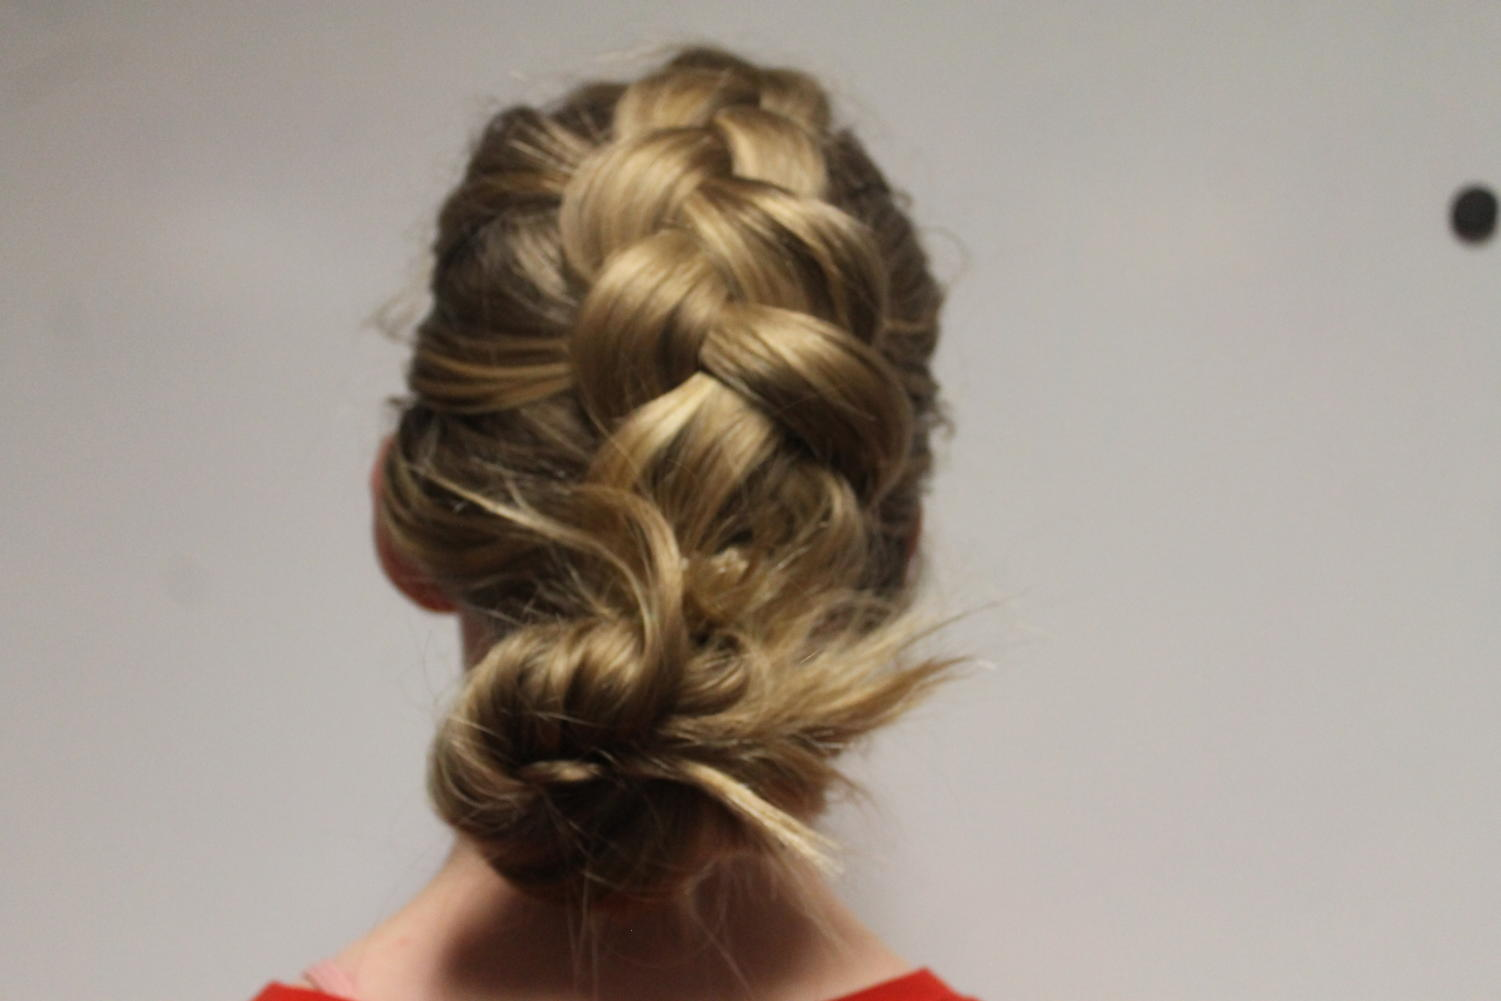 Staff photographer and columnist Saffron Eugea shows off her Dutch braid as a part of her article. The dutch braid can be used in many different ways, including the way it is shown in the image.